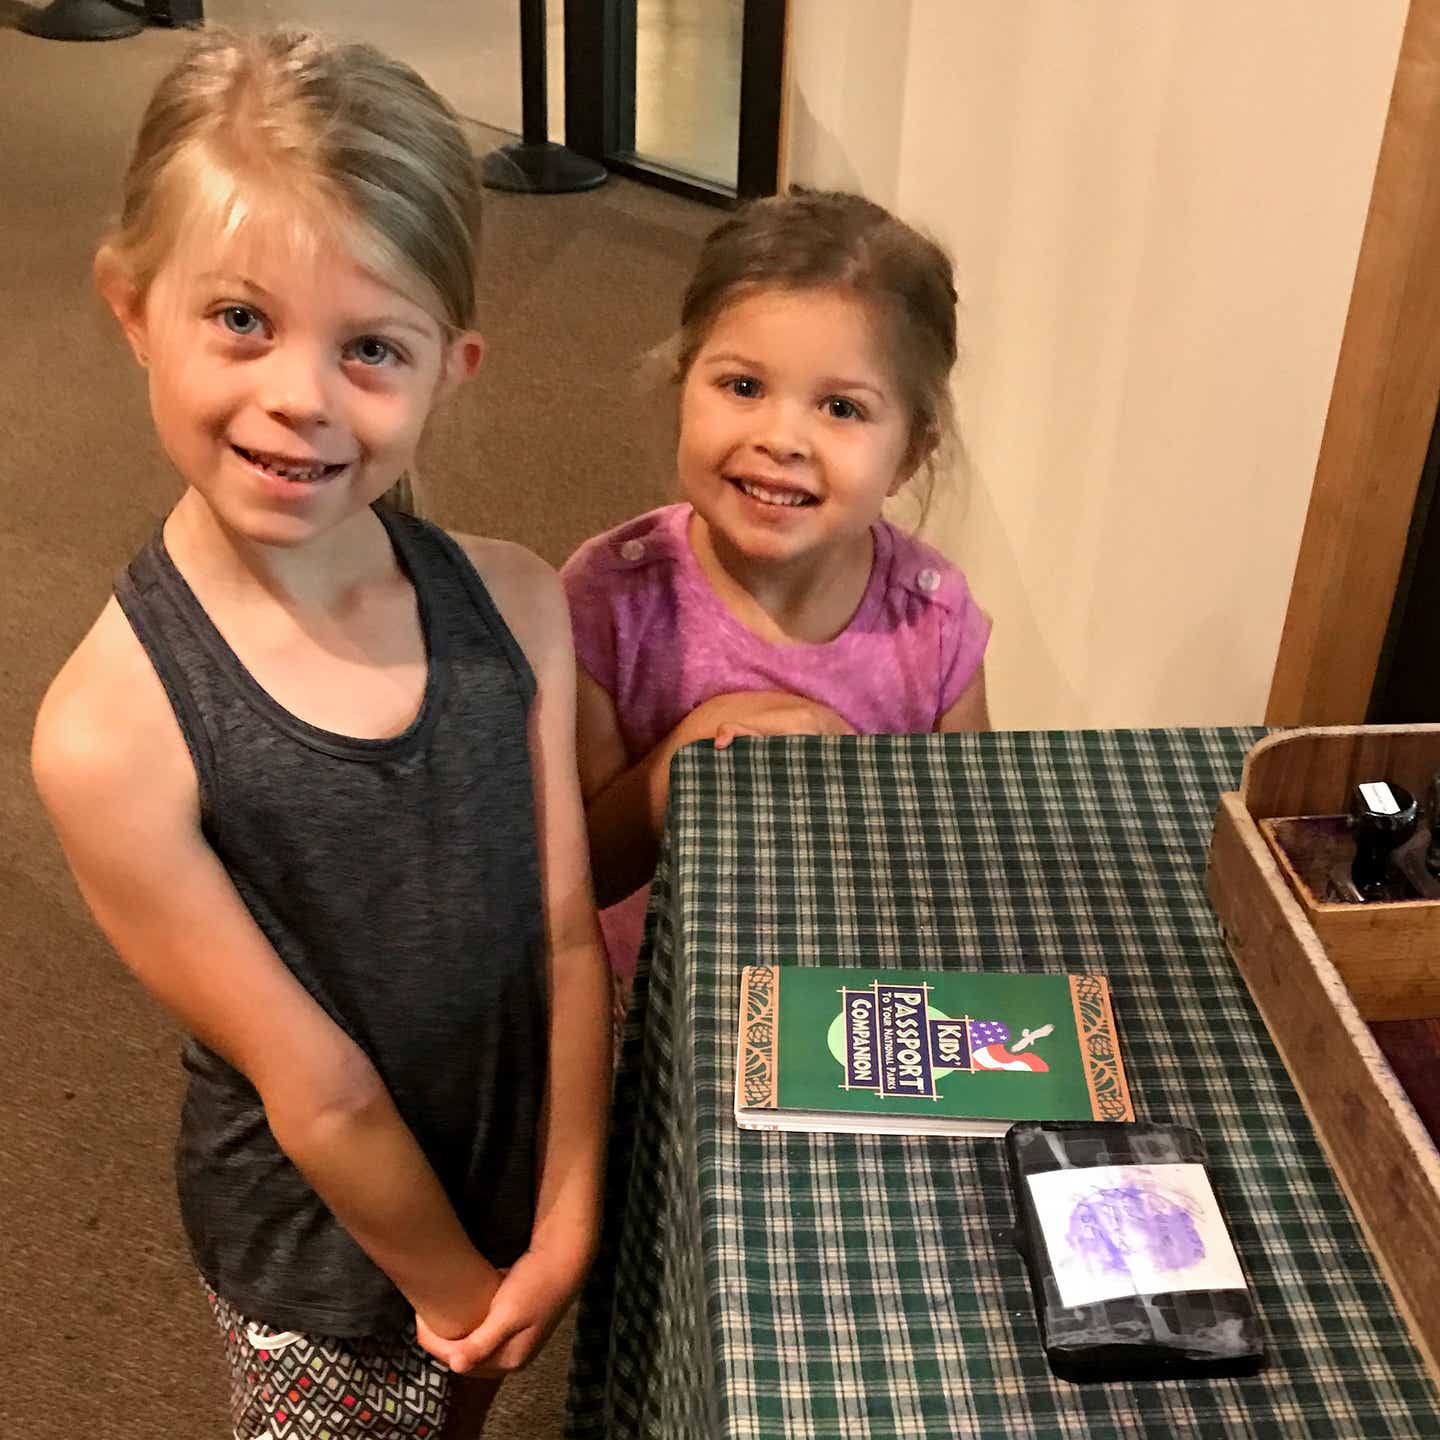 Author, Chris Johnstons' daughters, Kyndall (left), and Kyler (right) pose with their Passport stamp booklet.